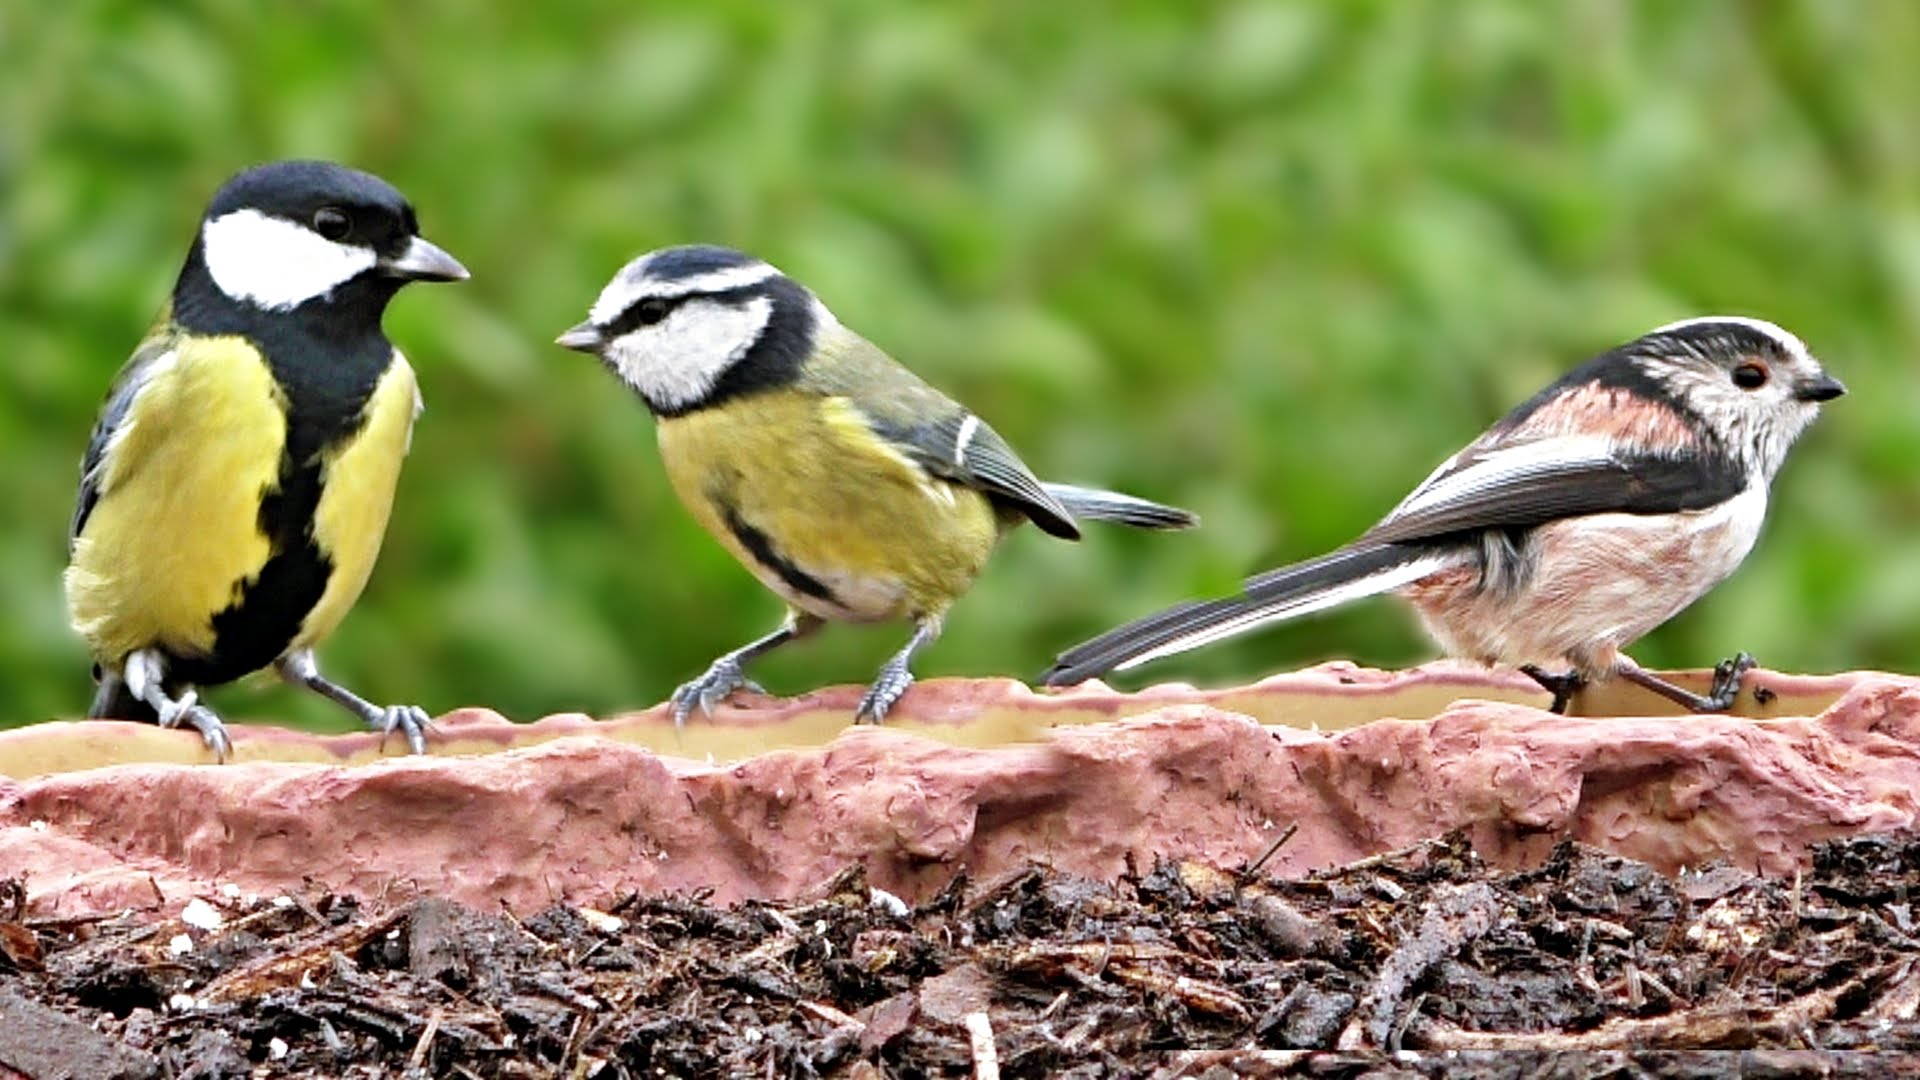 Long-tailed Tits, Blue Tit and Great Tit - Three Little Birds - YouTube